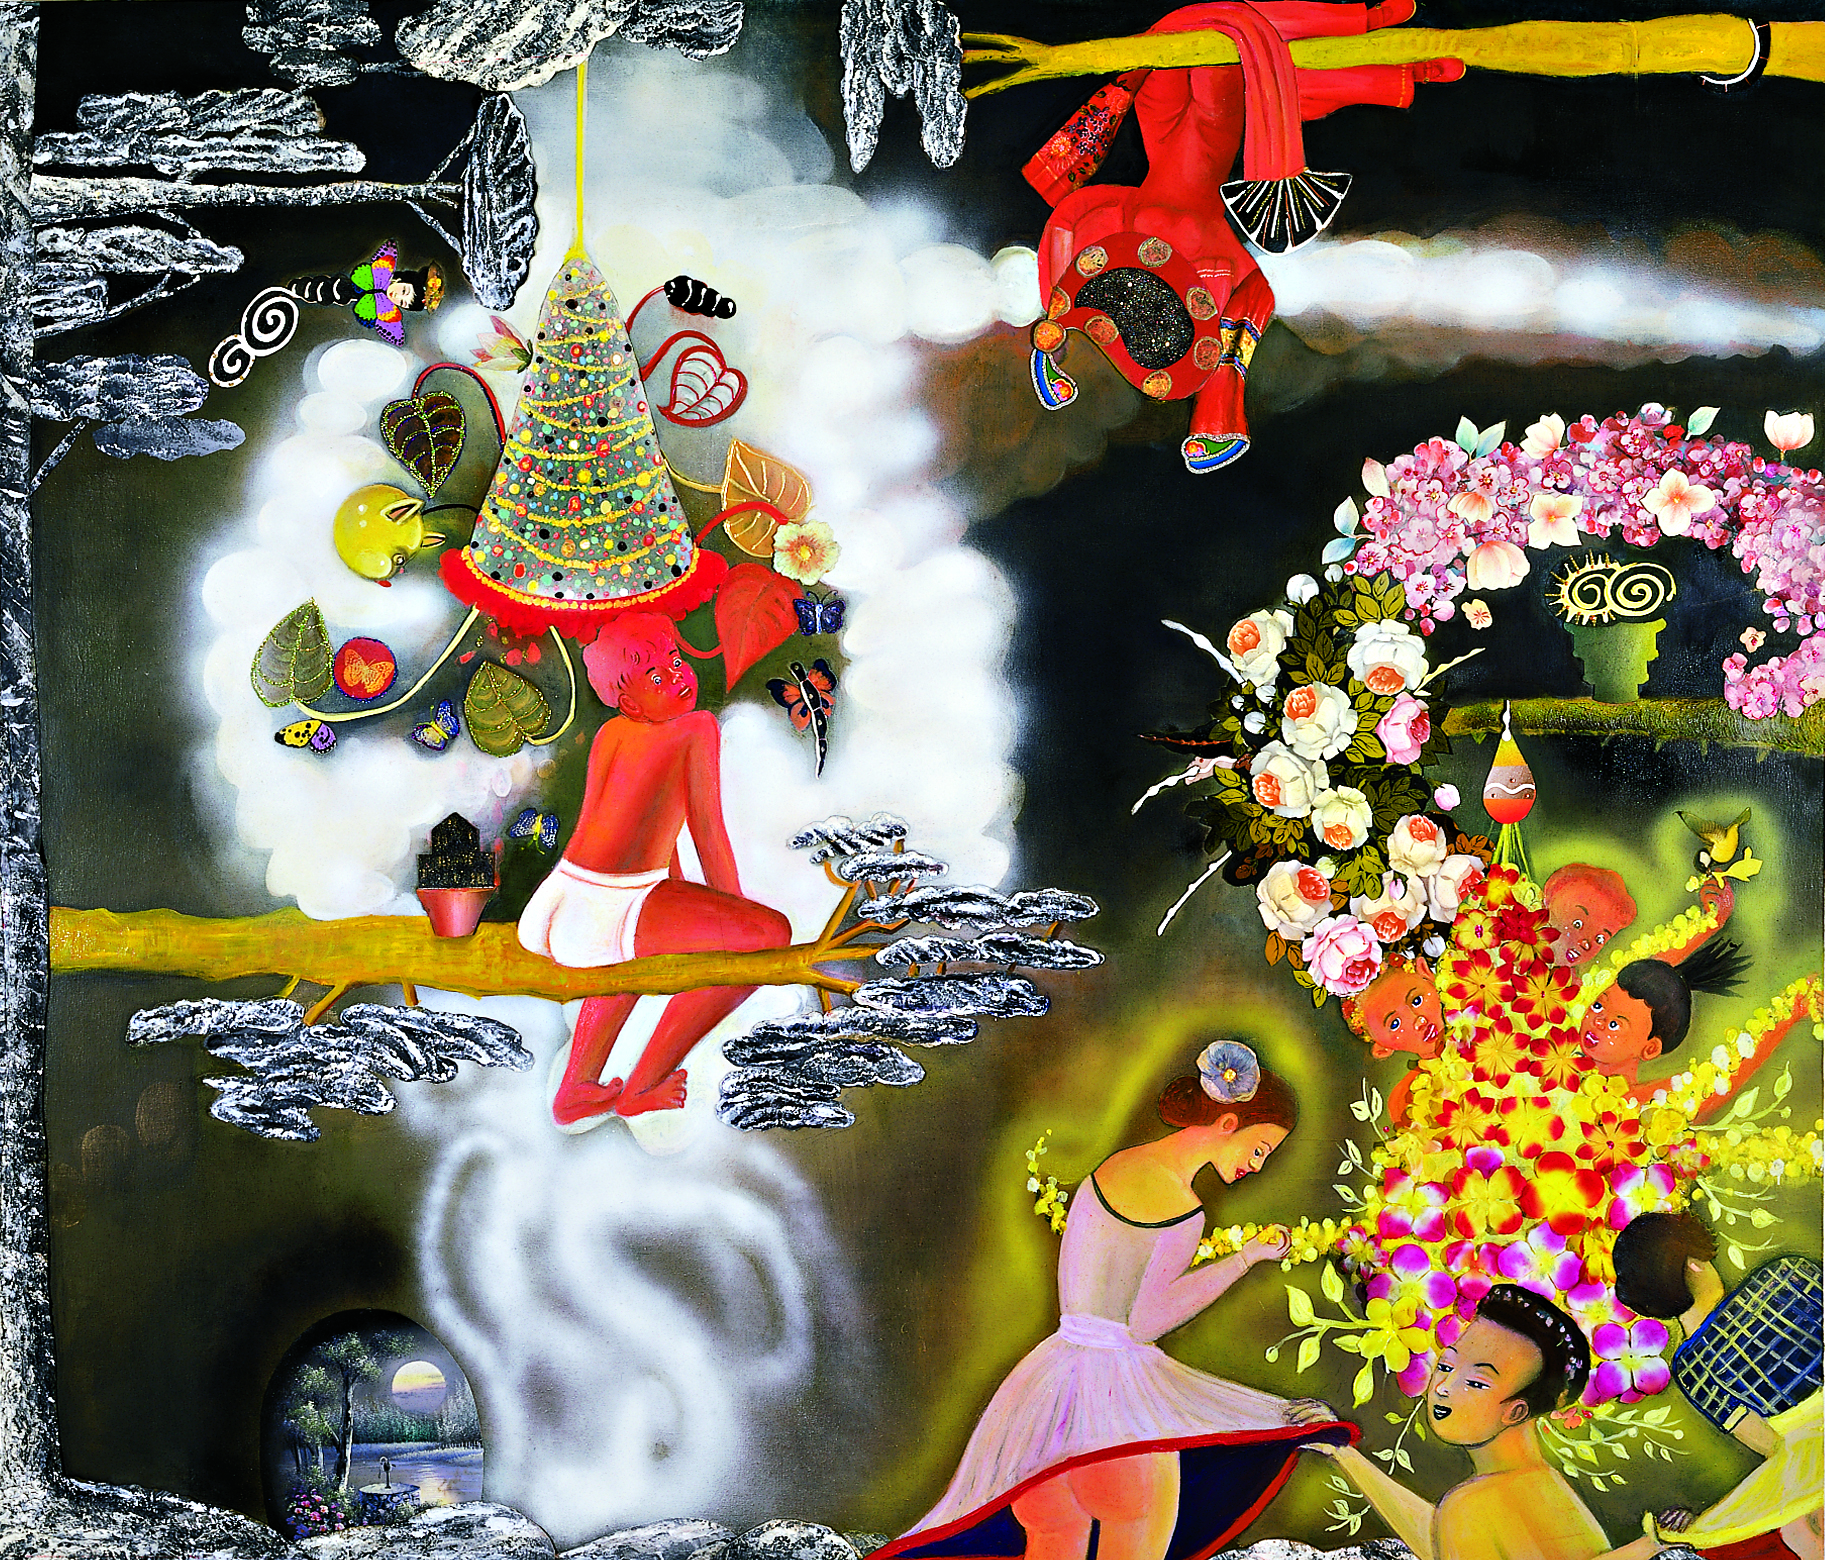 "Left Behind (Sputtering) Under A Cloud (Of Winter), 72"" × 84"", mixed media and collage on canvas, 2004"